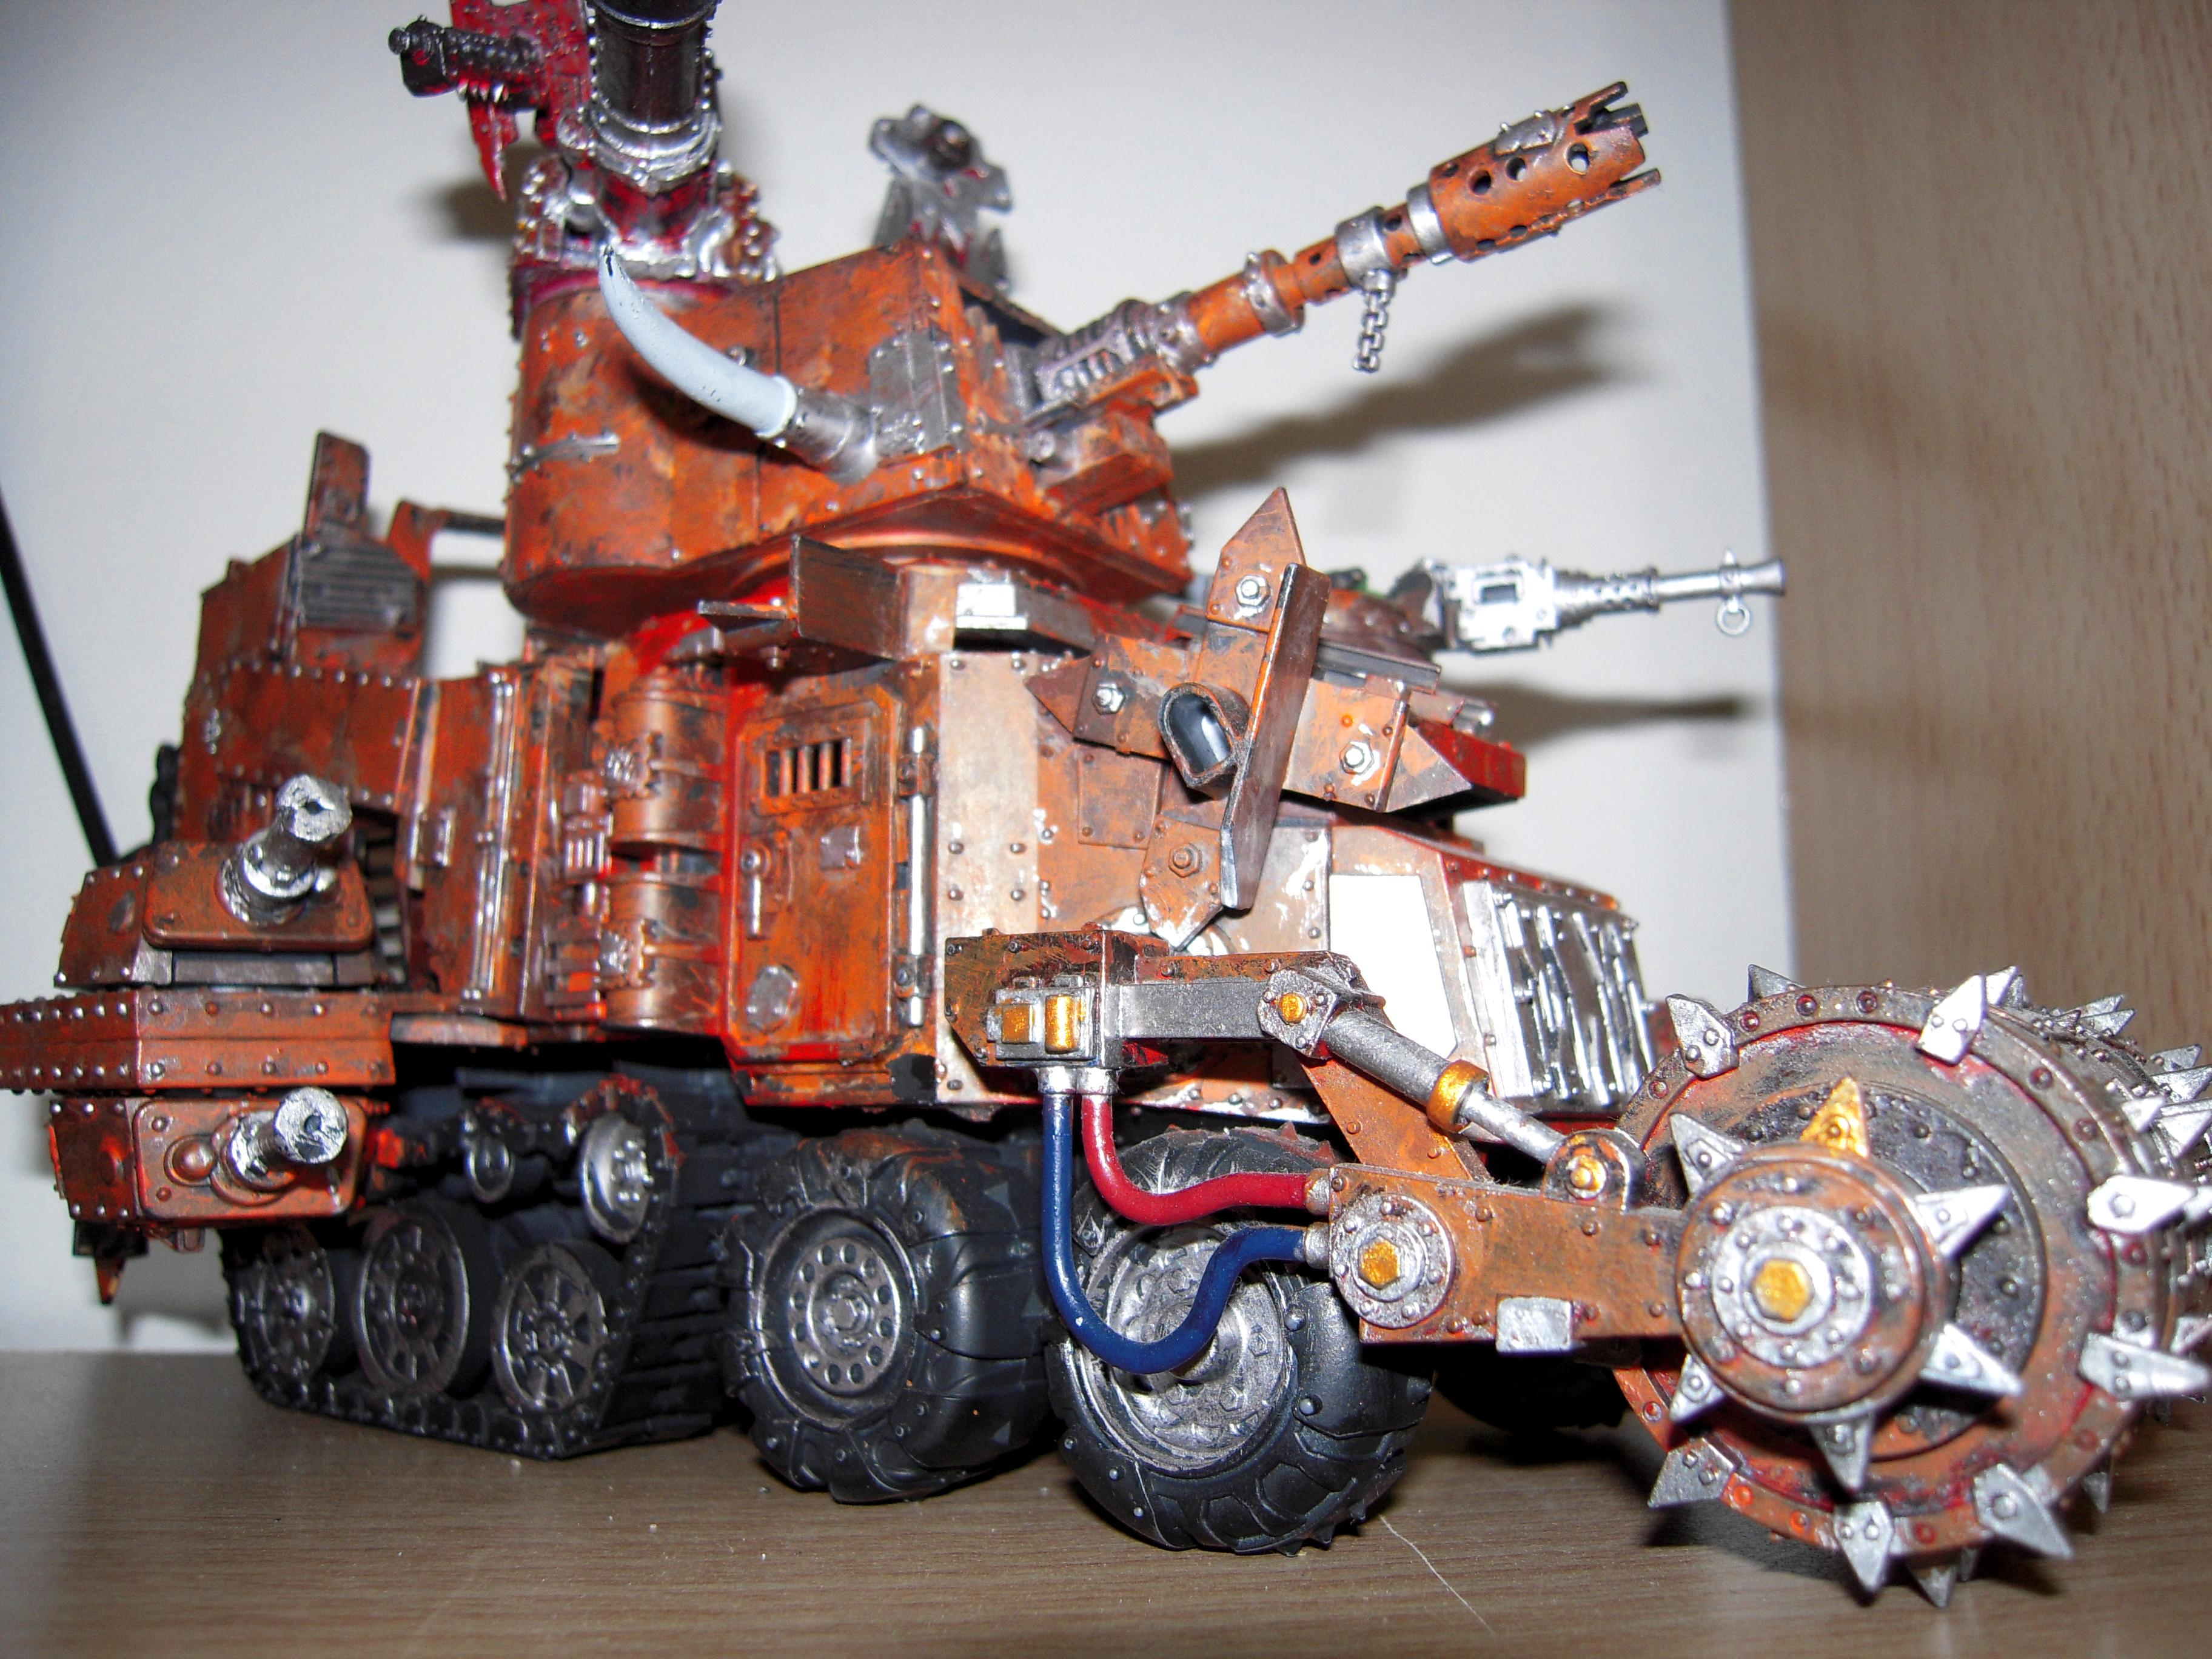 Battle, Big, Conversion, Deff, Fortress, Giant, Huge, Kannon, Large, Looted, Open Top, Orks, Rolla, Tank, Wagon